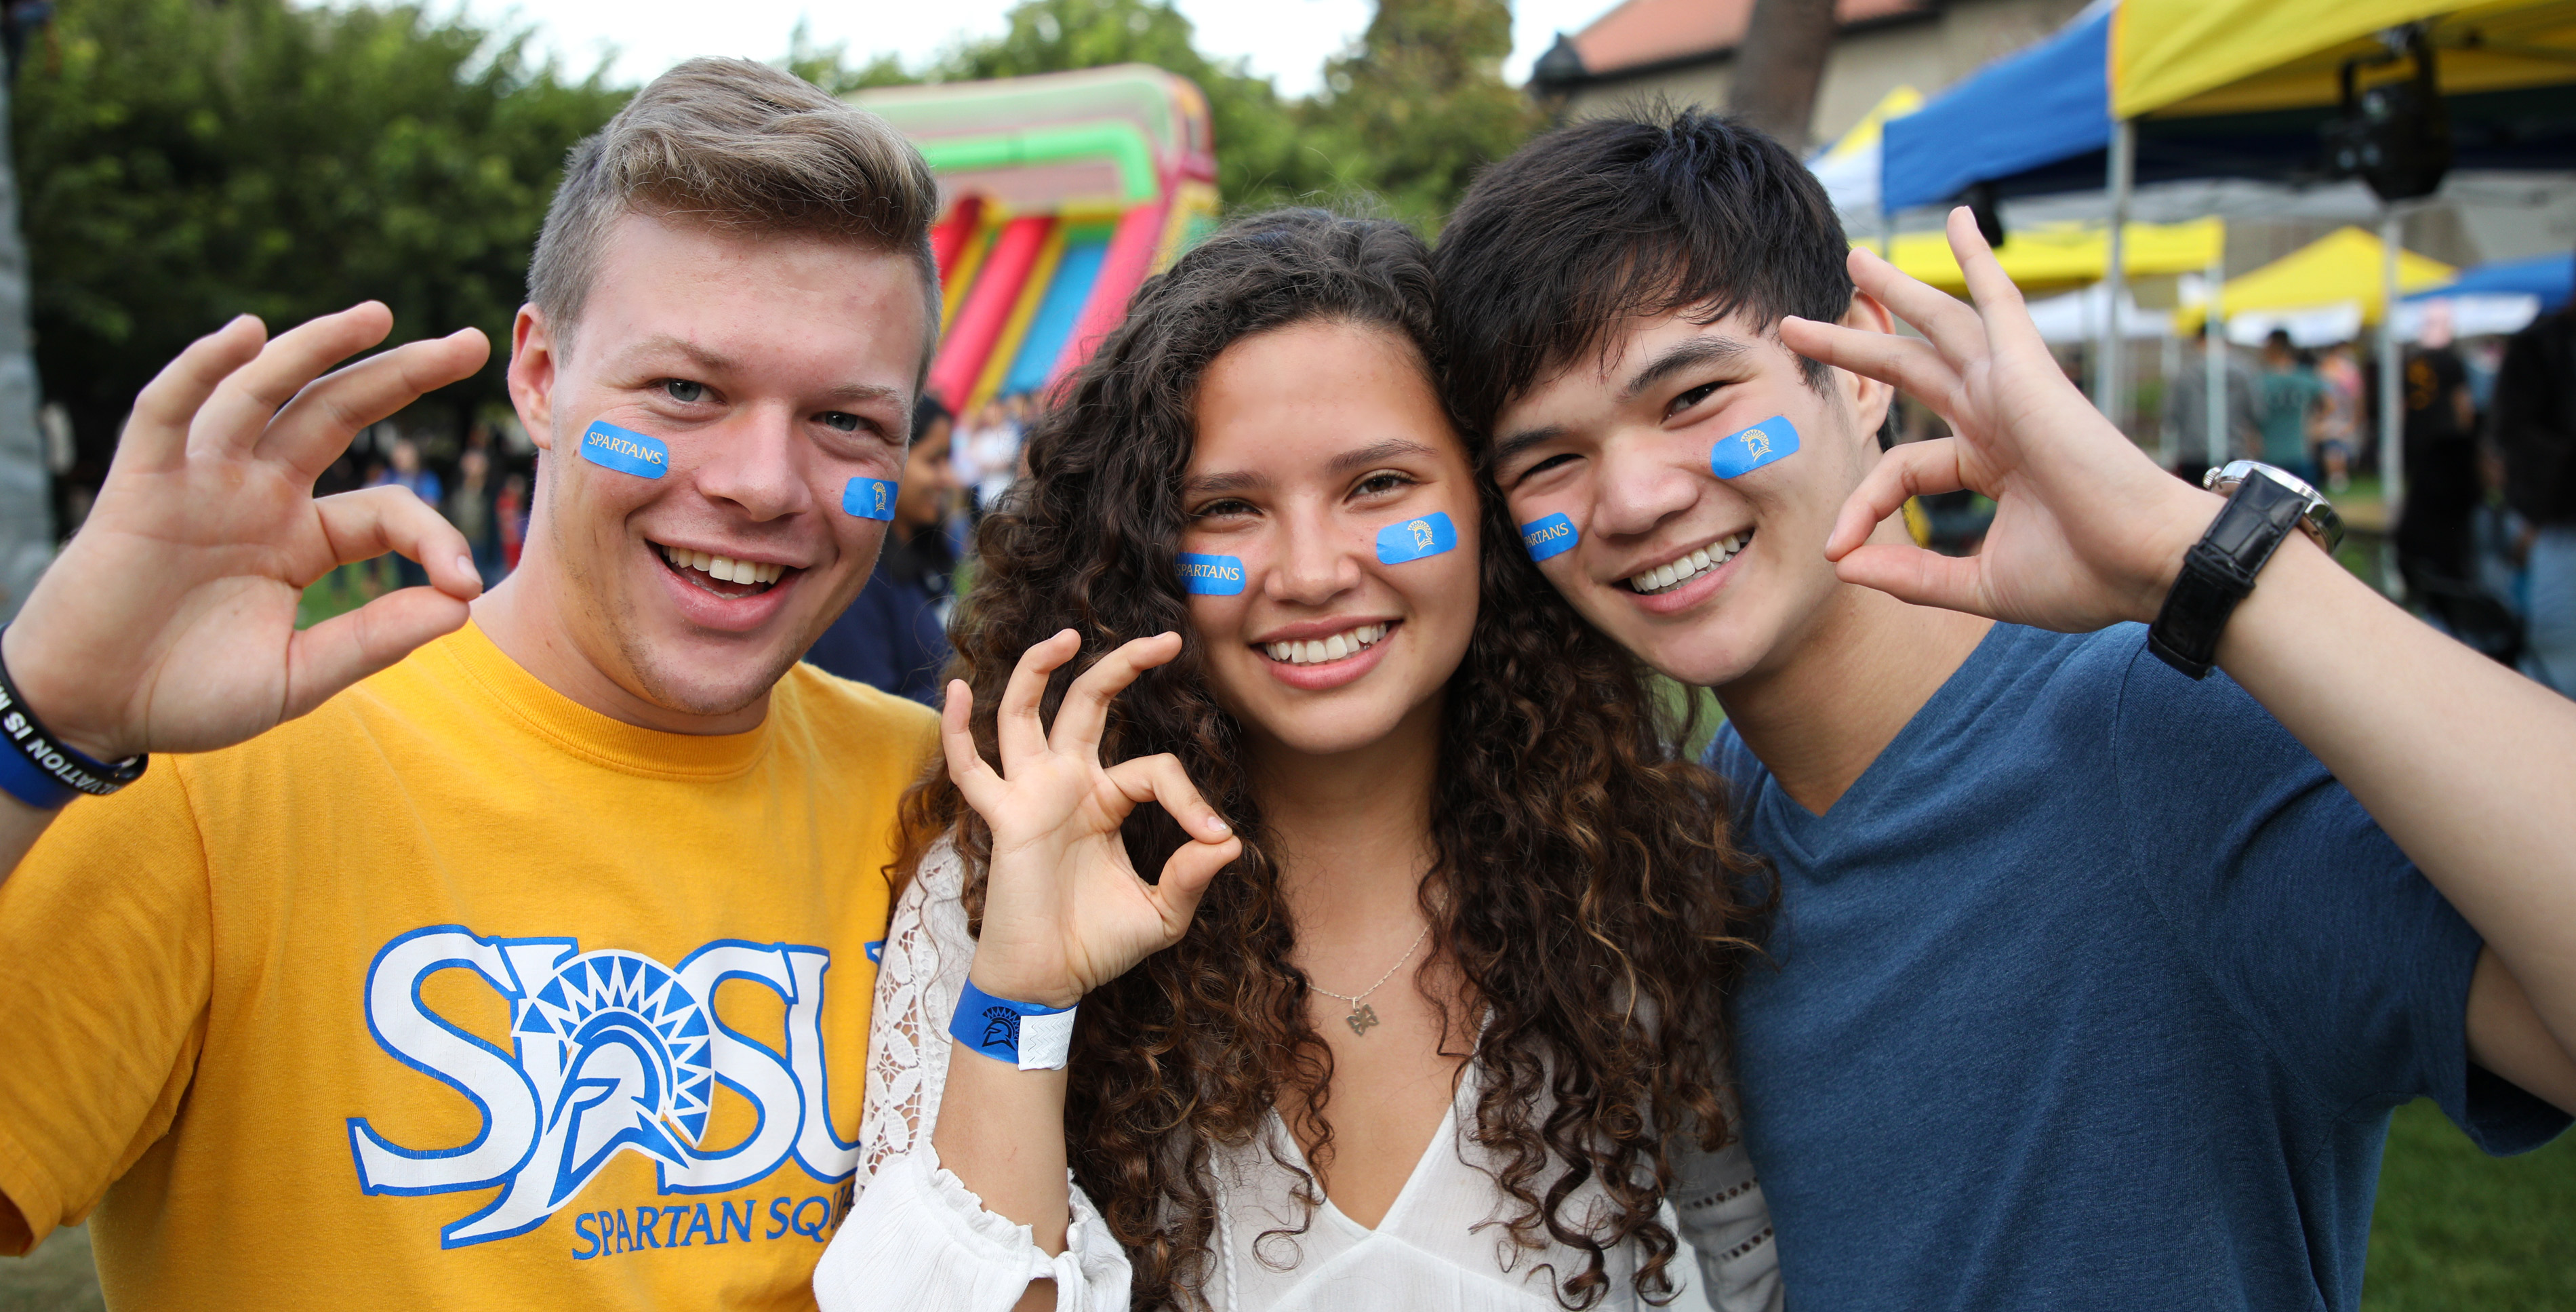 SJSU Students at homecoming event.